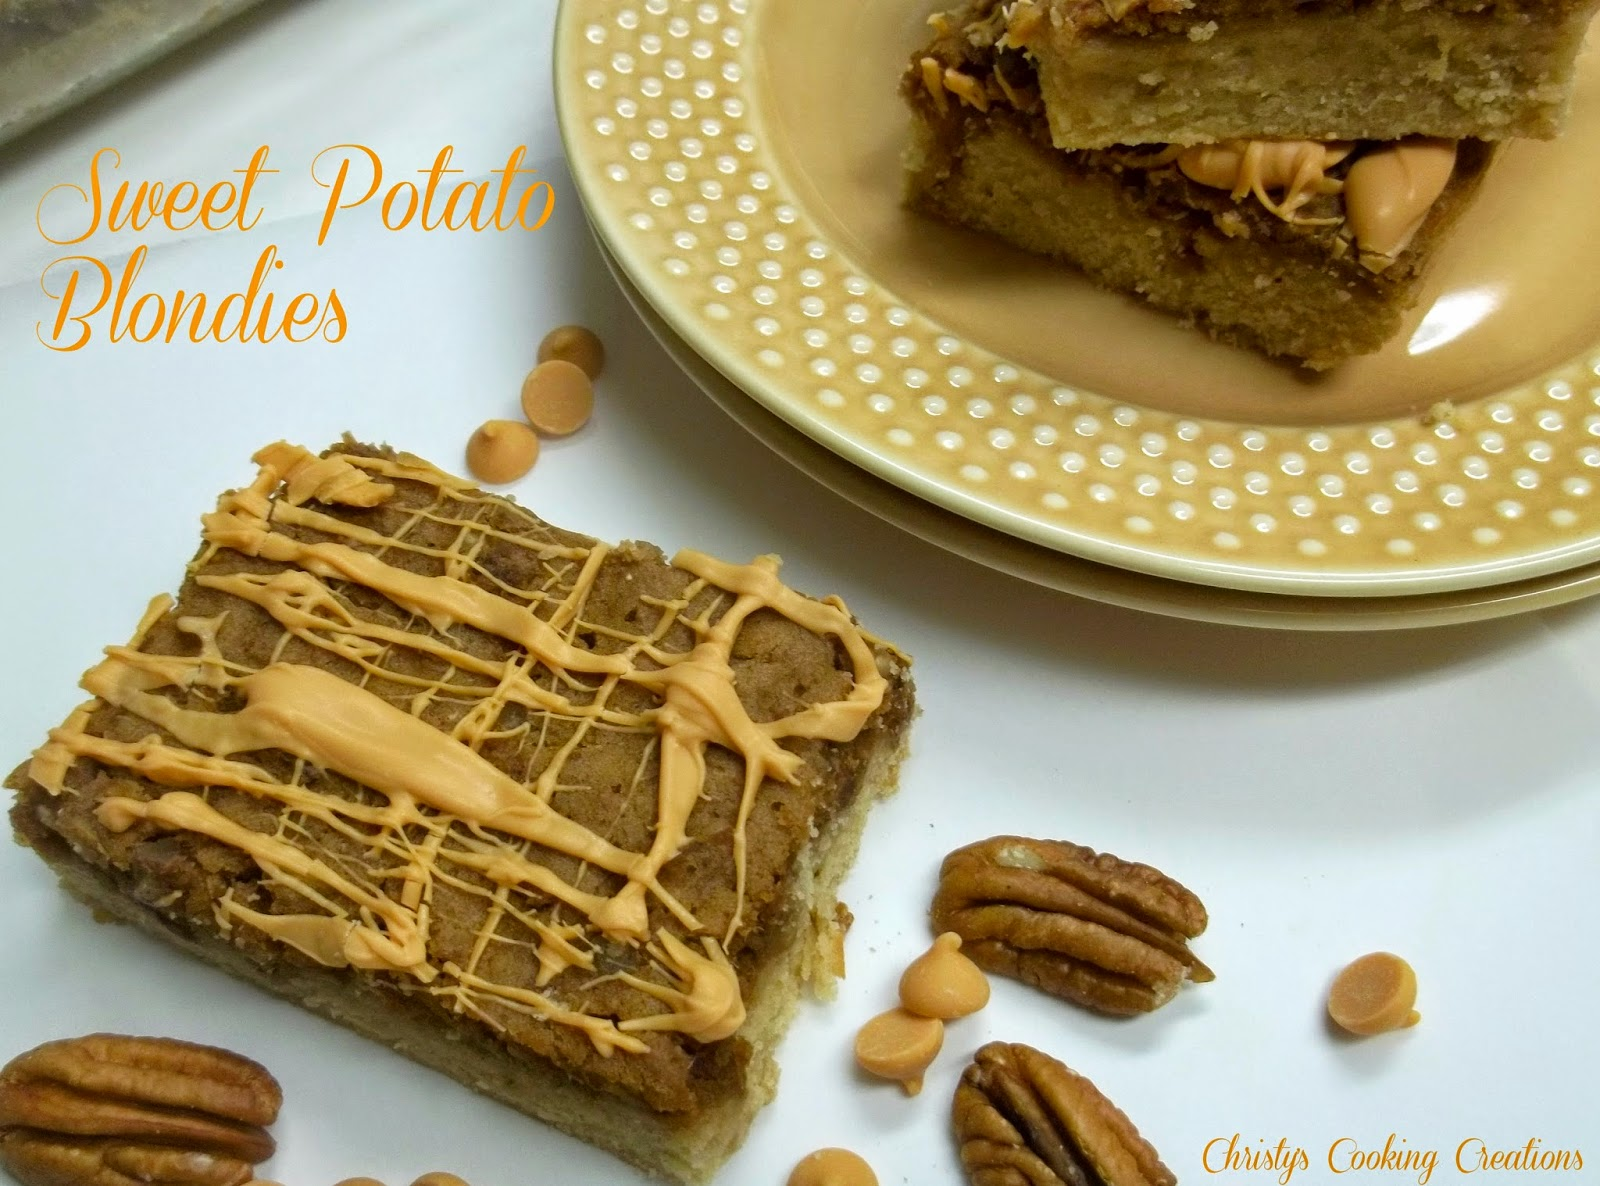 Christy's Cooking Creations: Sweet Potato Blondies